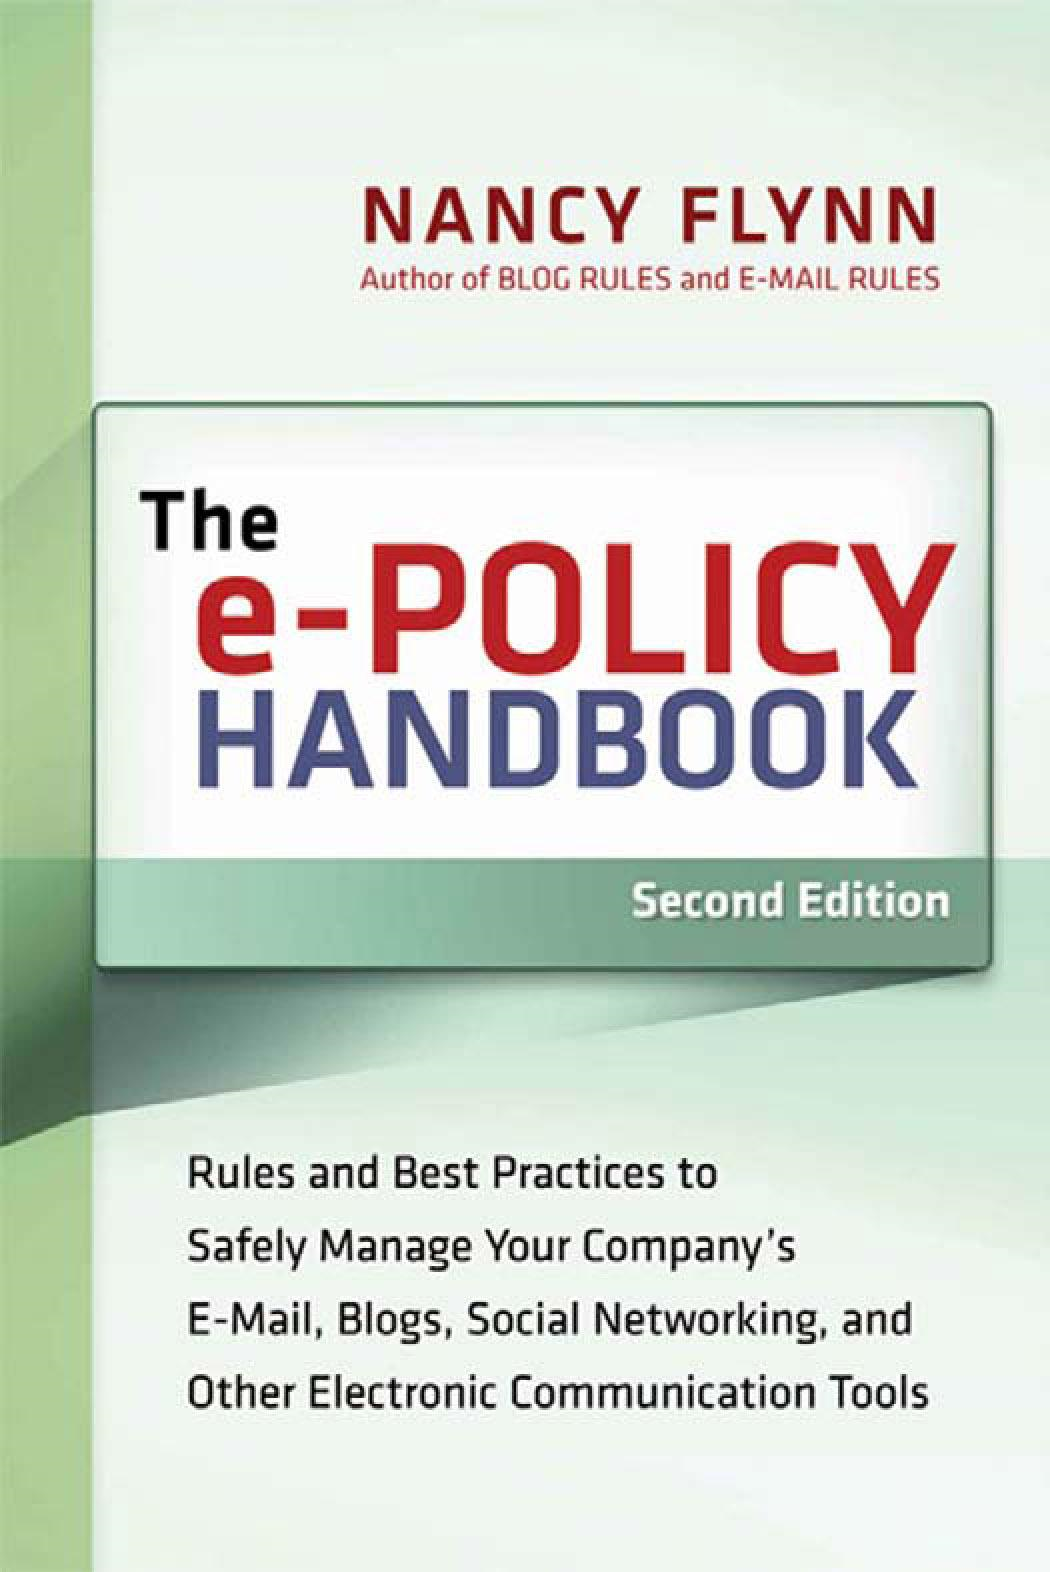 e-Policy Handbook, The: Rules and Best Practices to Safely Manage Your Company's E-Mail, Blogs, Social Networking, and Other Electronic Communication